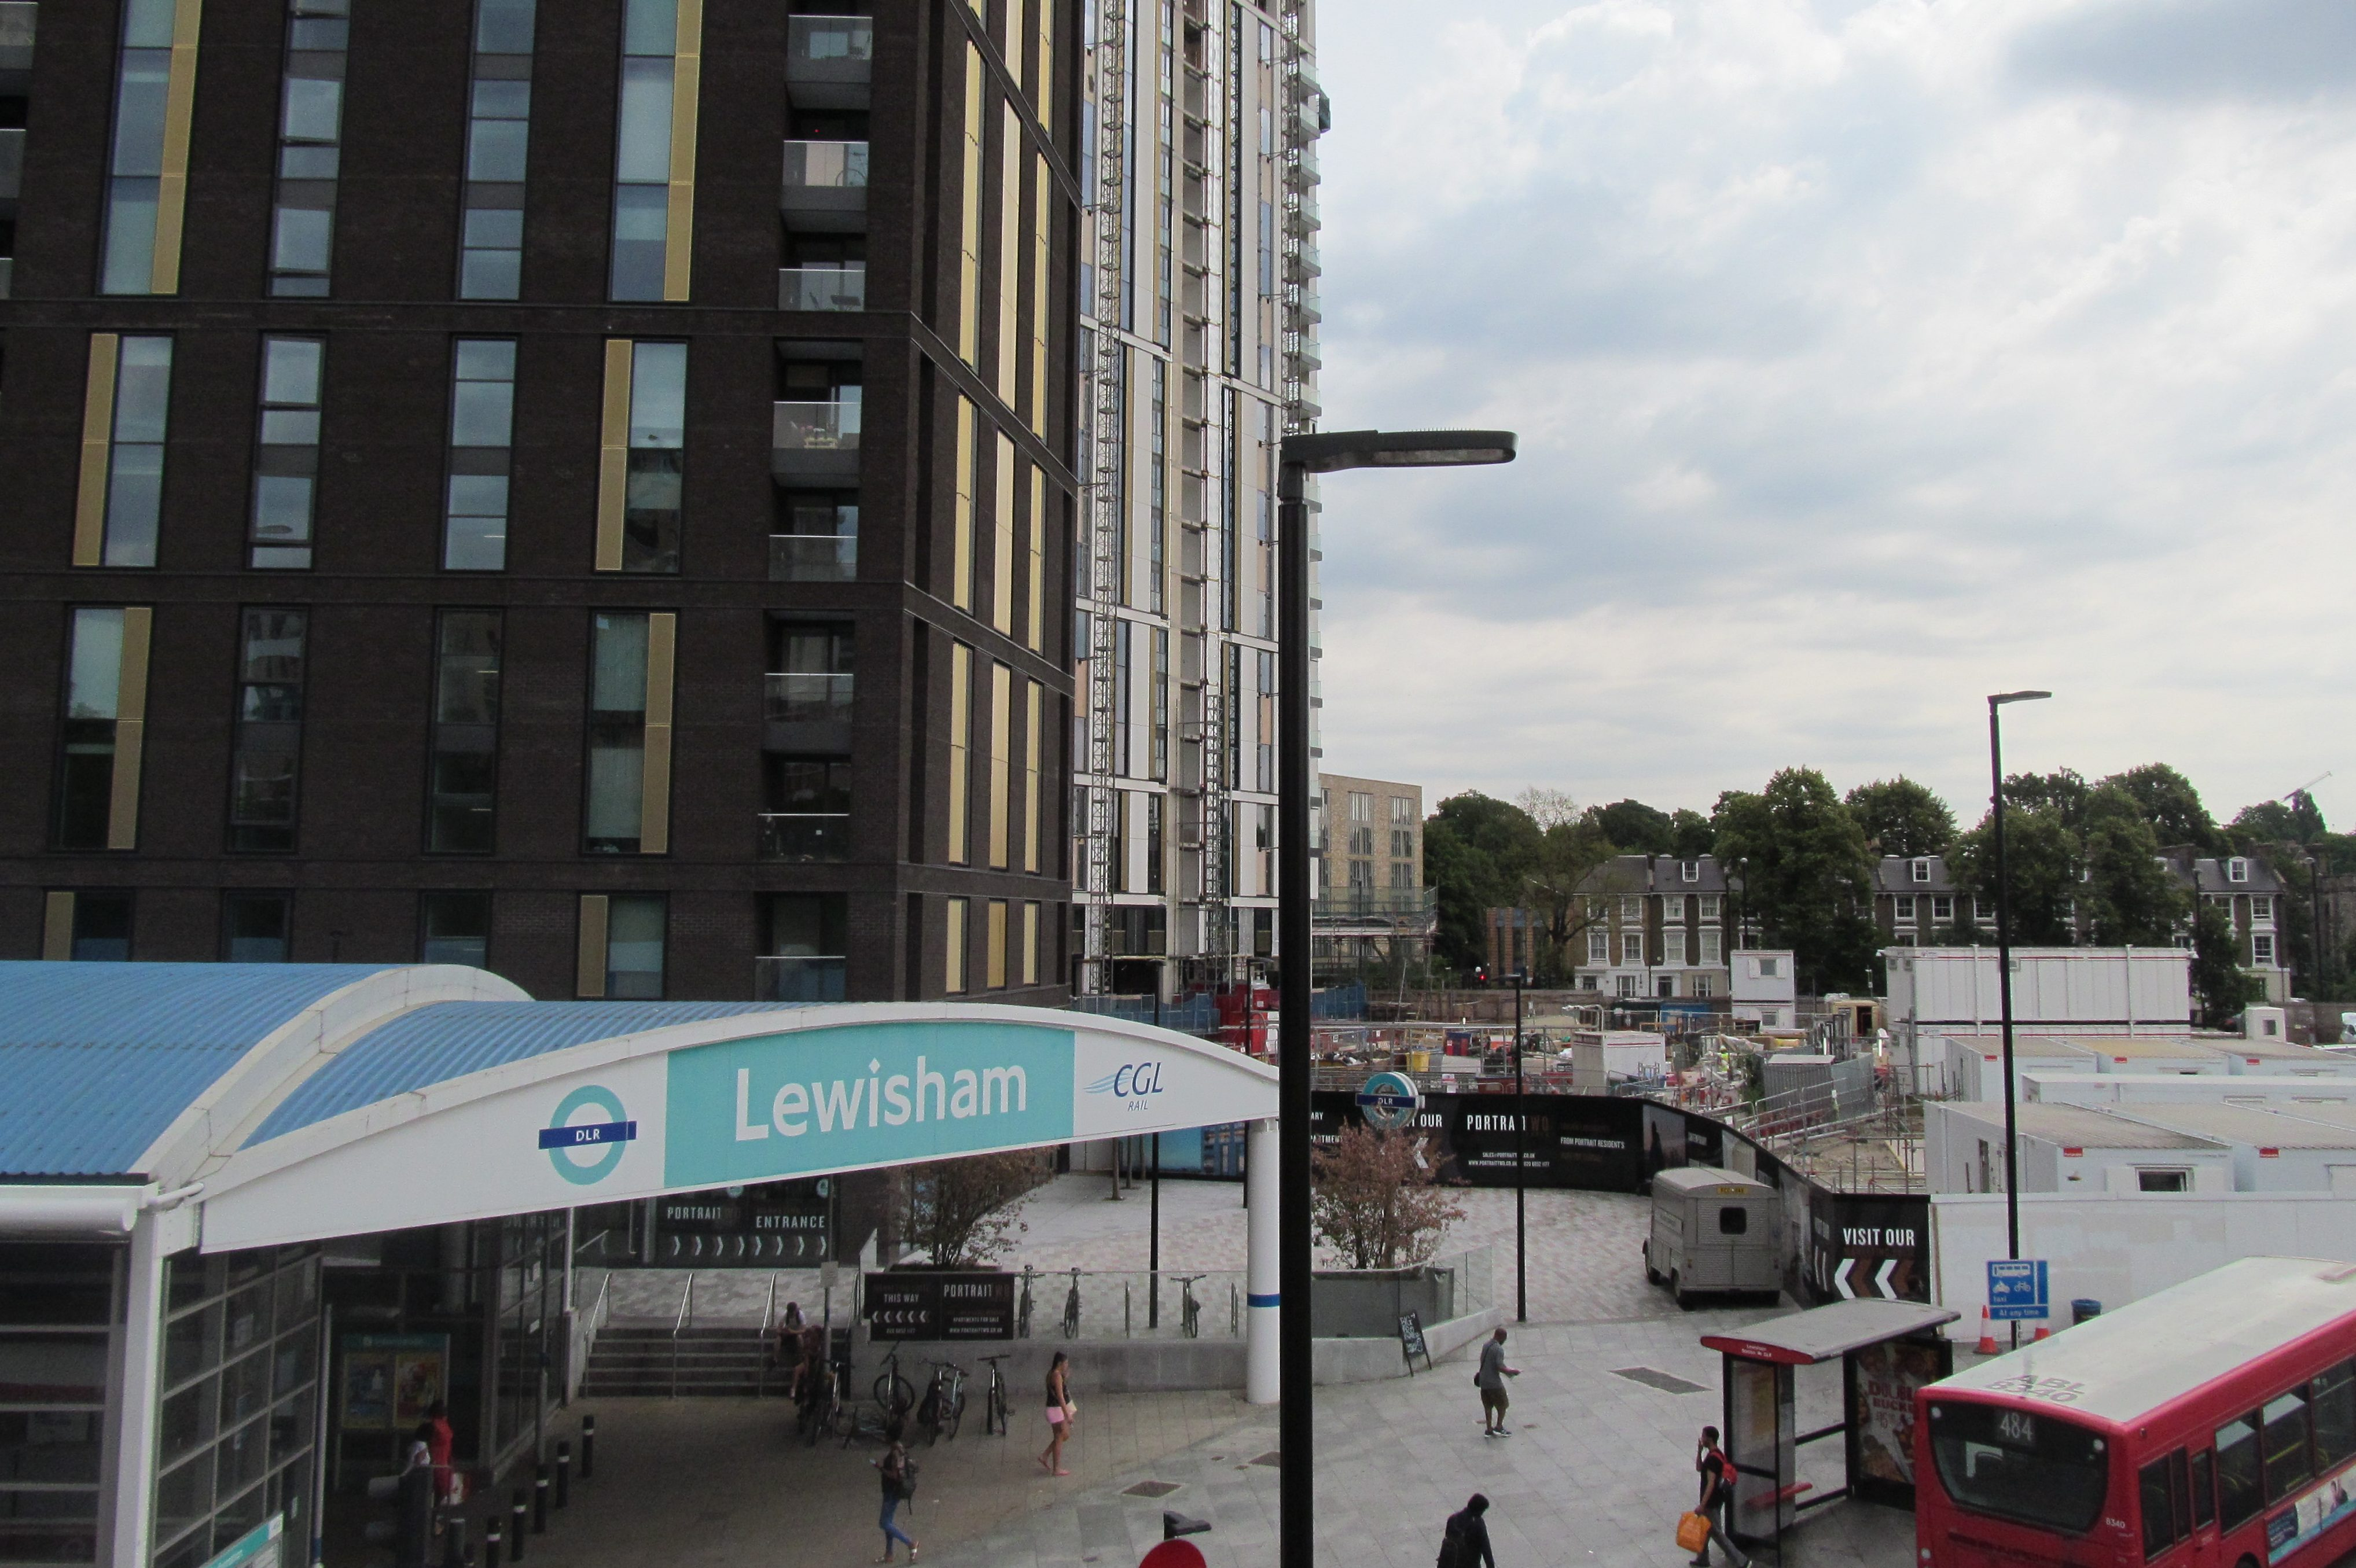 Bakerloo Line extension land to Lewisham protected – but does it mean much?